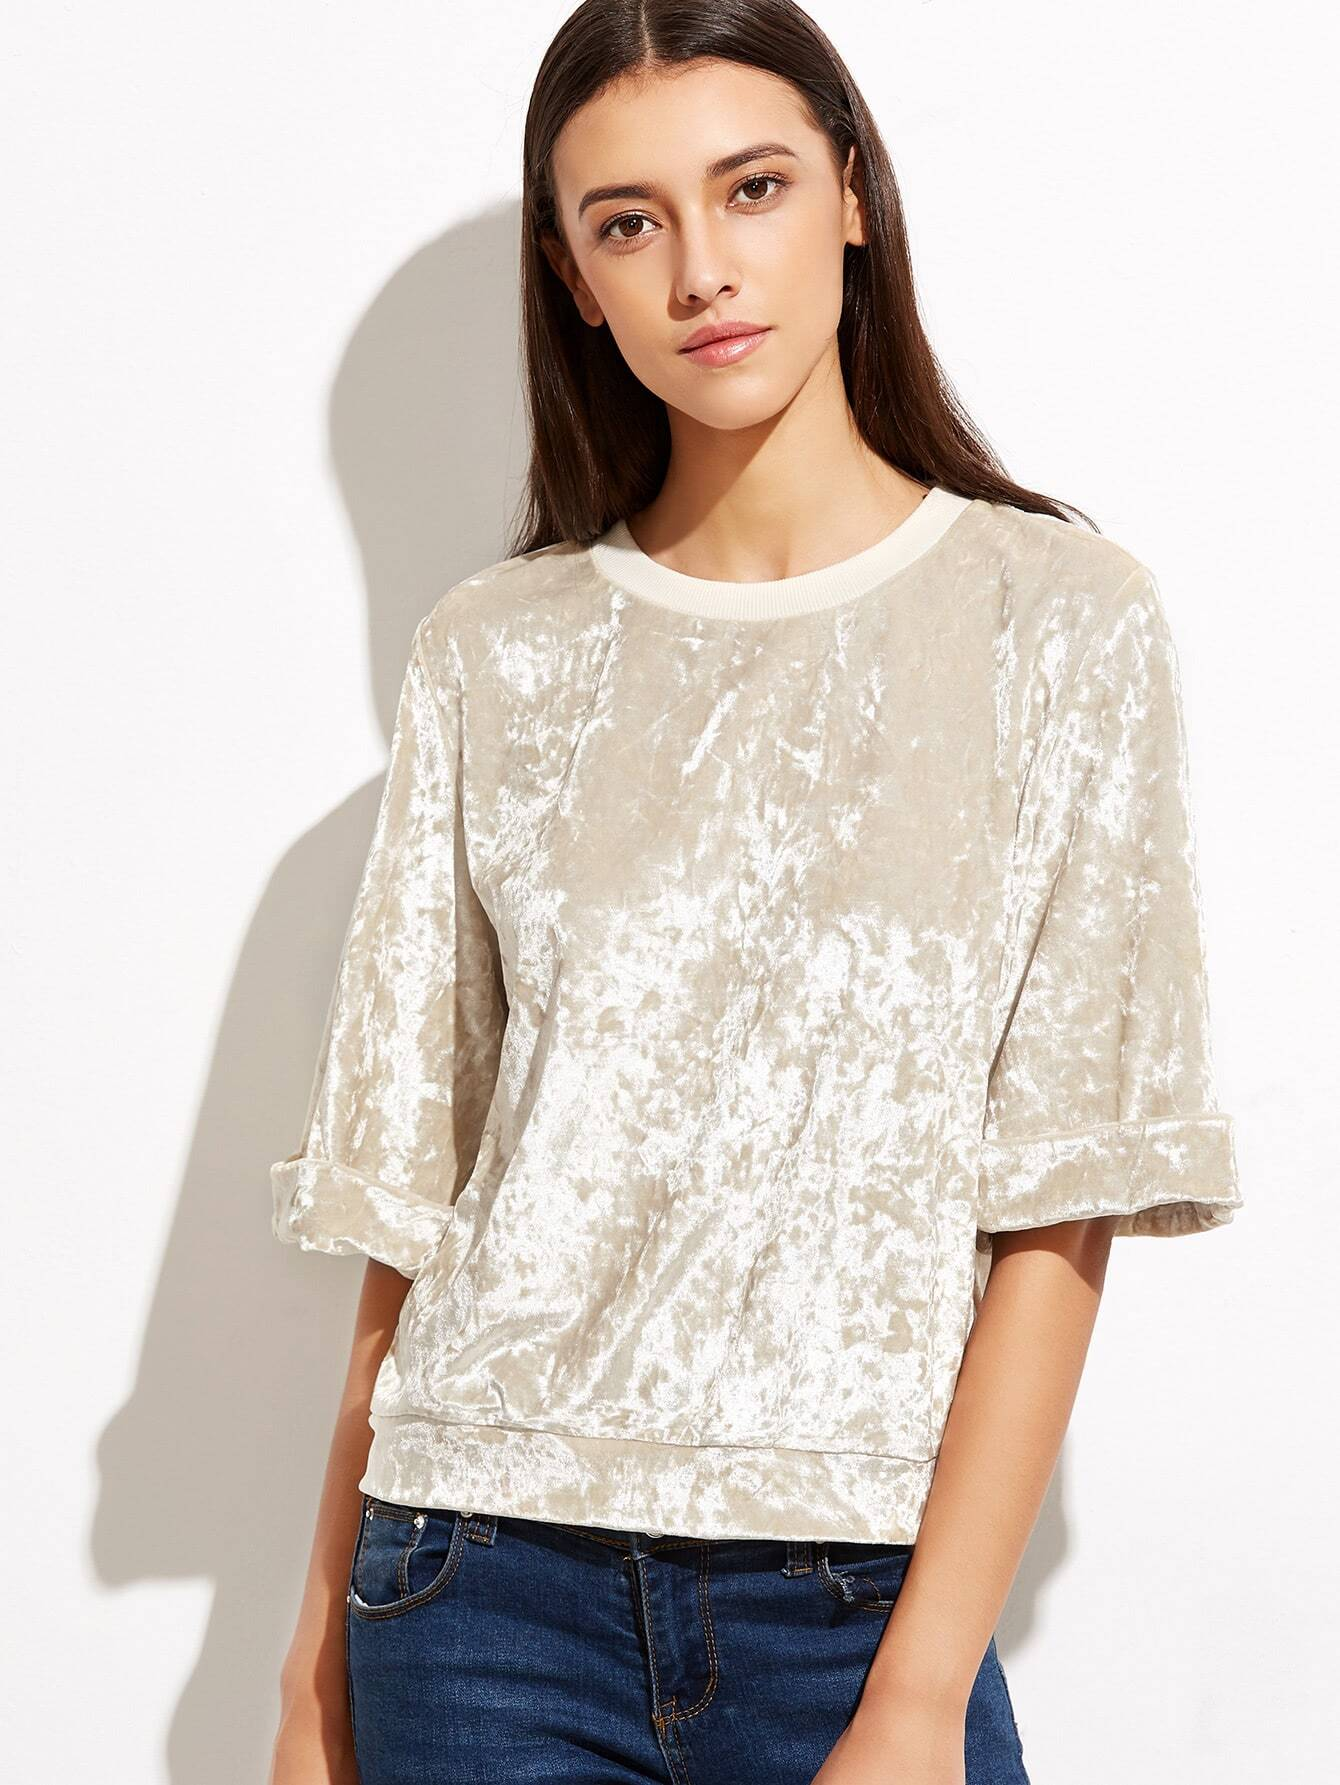 Apricot Crushed Velvet Top blouse160923710